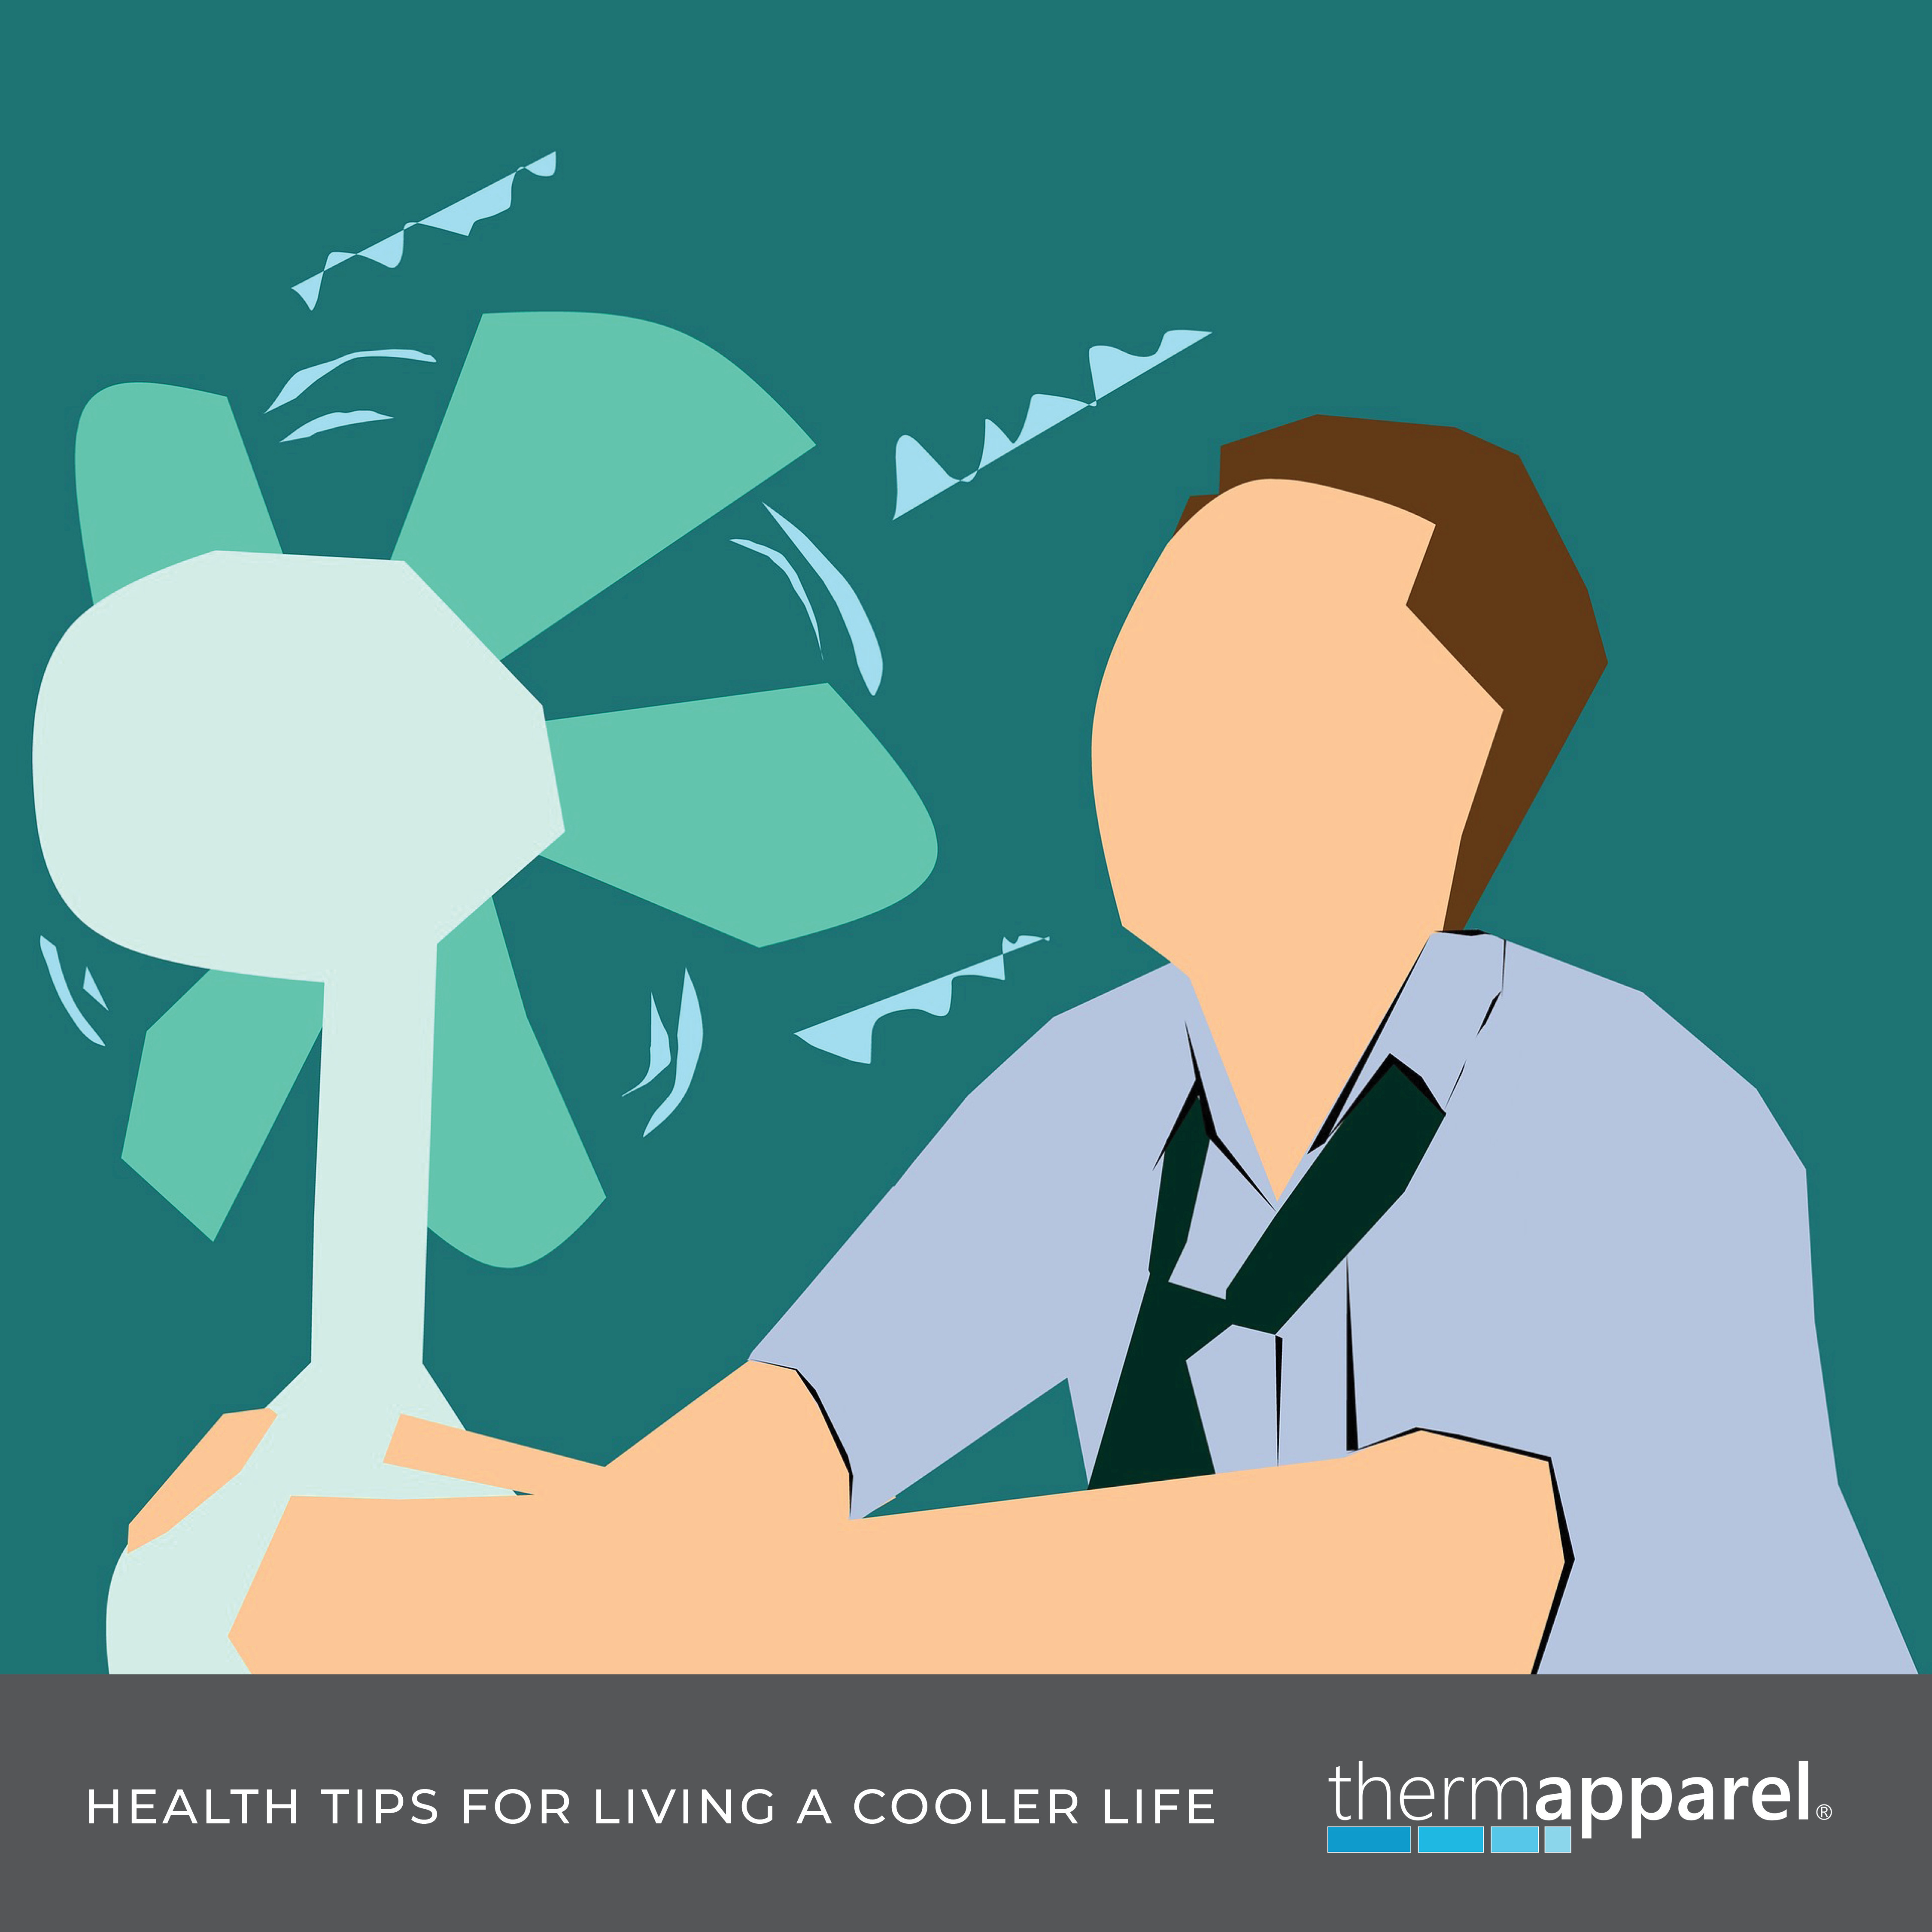 Interesting facts about sweating, breathing, and the science of cooling our bodies